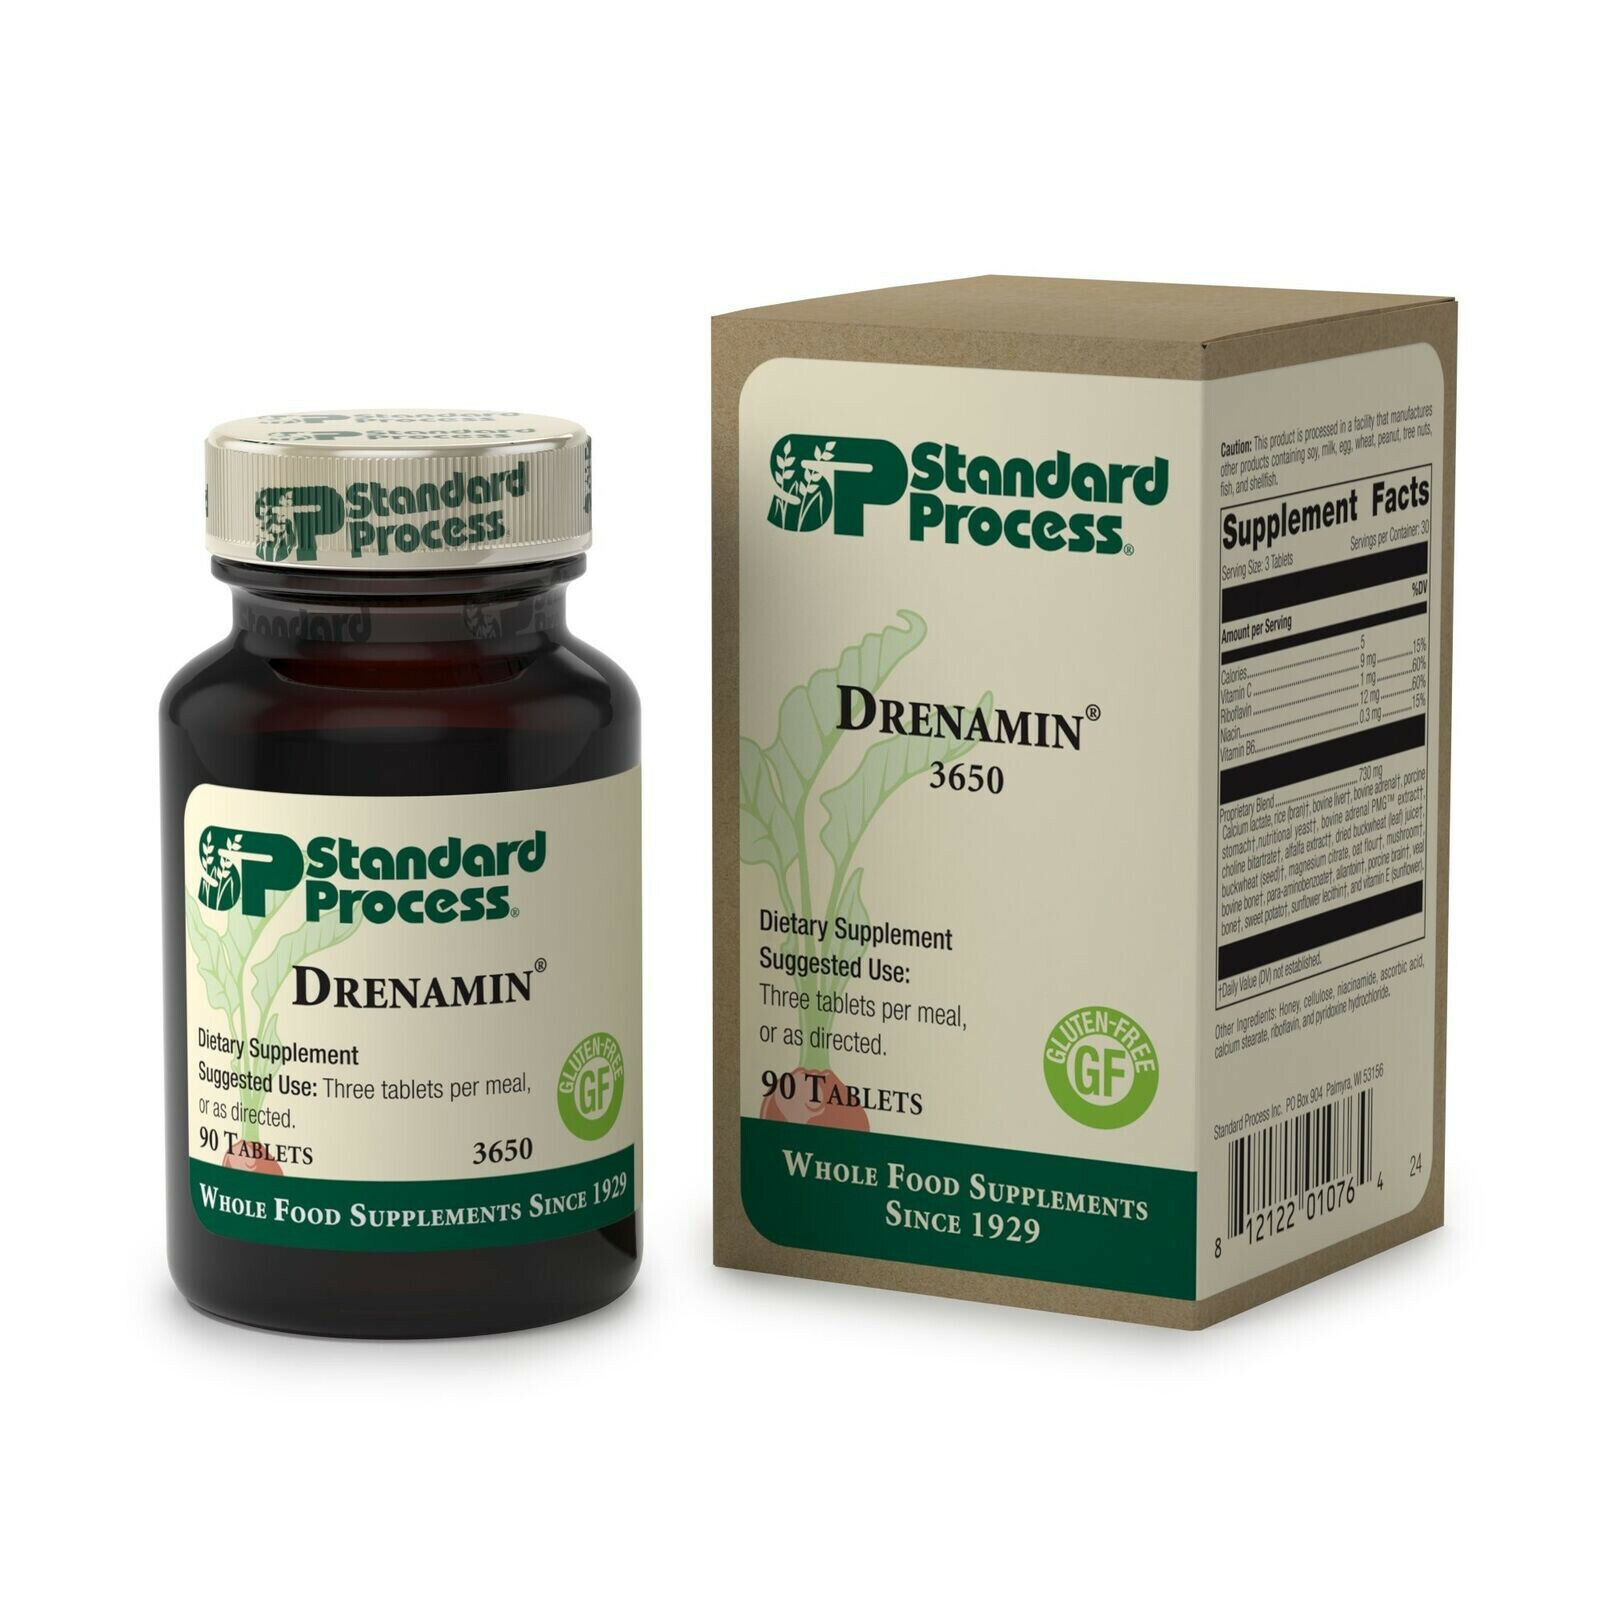 Standard Process - Drenamin - Supports Immune System Function, Energy Product...